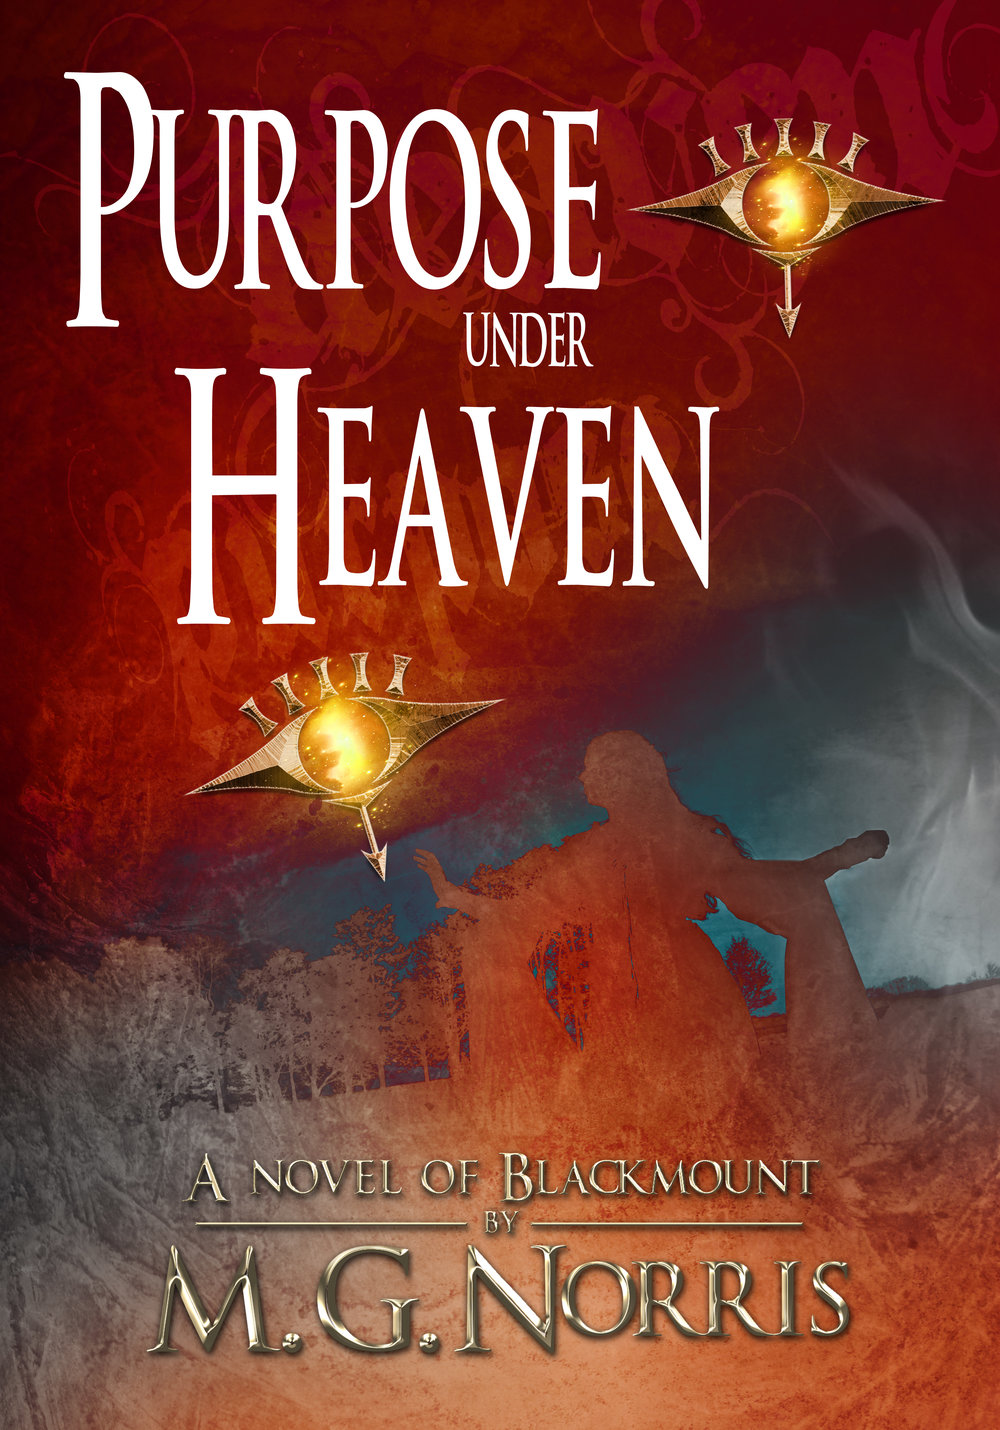 Blackmount Book 4 - Purpose Under Heaven  release date - tbd